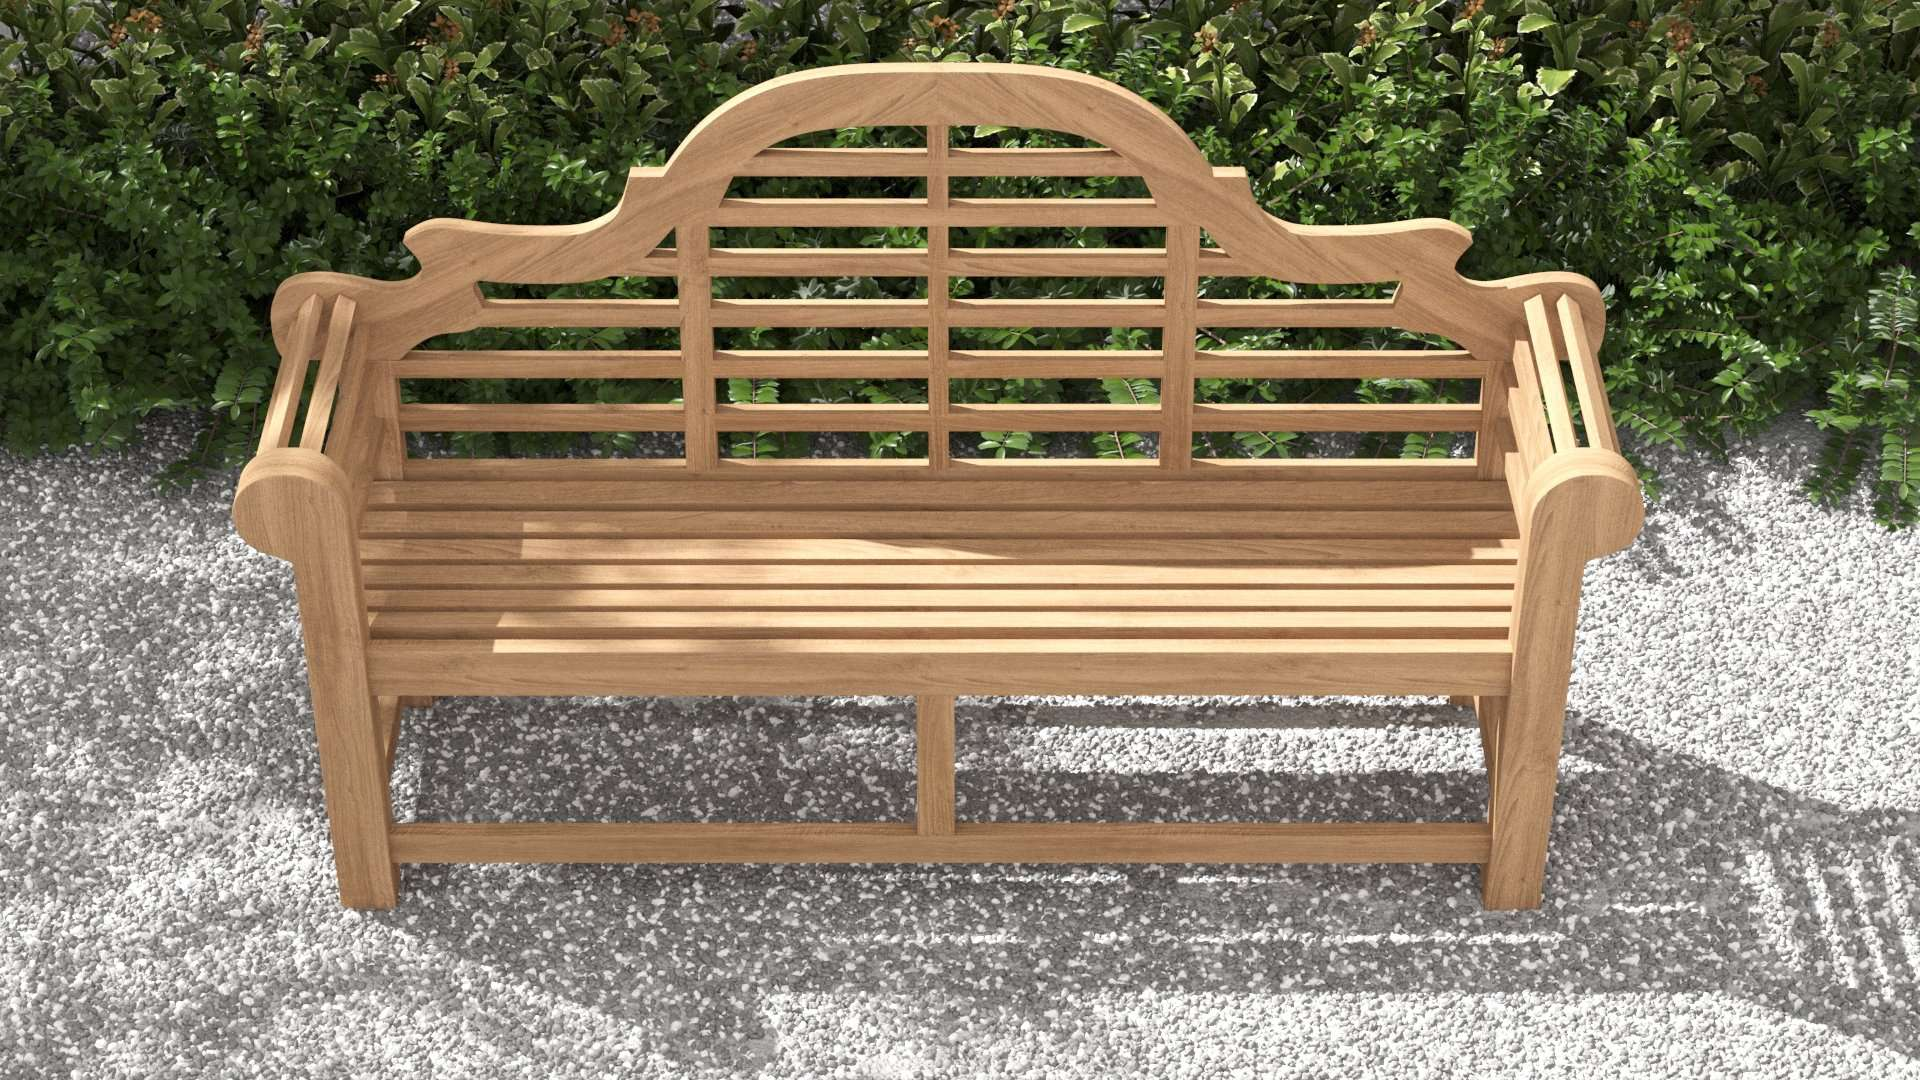 Lutyens Teak Bench (150cm) 3 Seater  - Chic Teak® | Luxury Teak Furniture